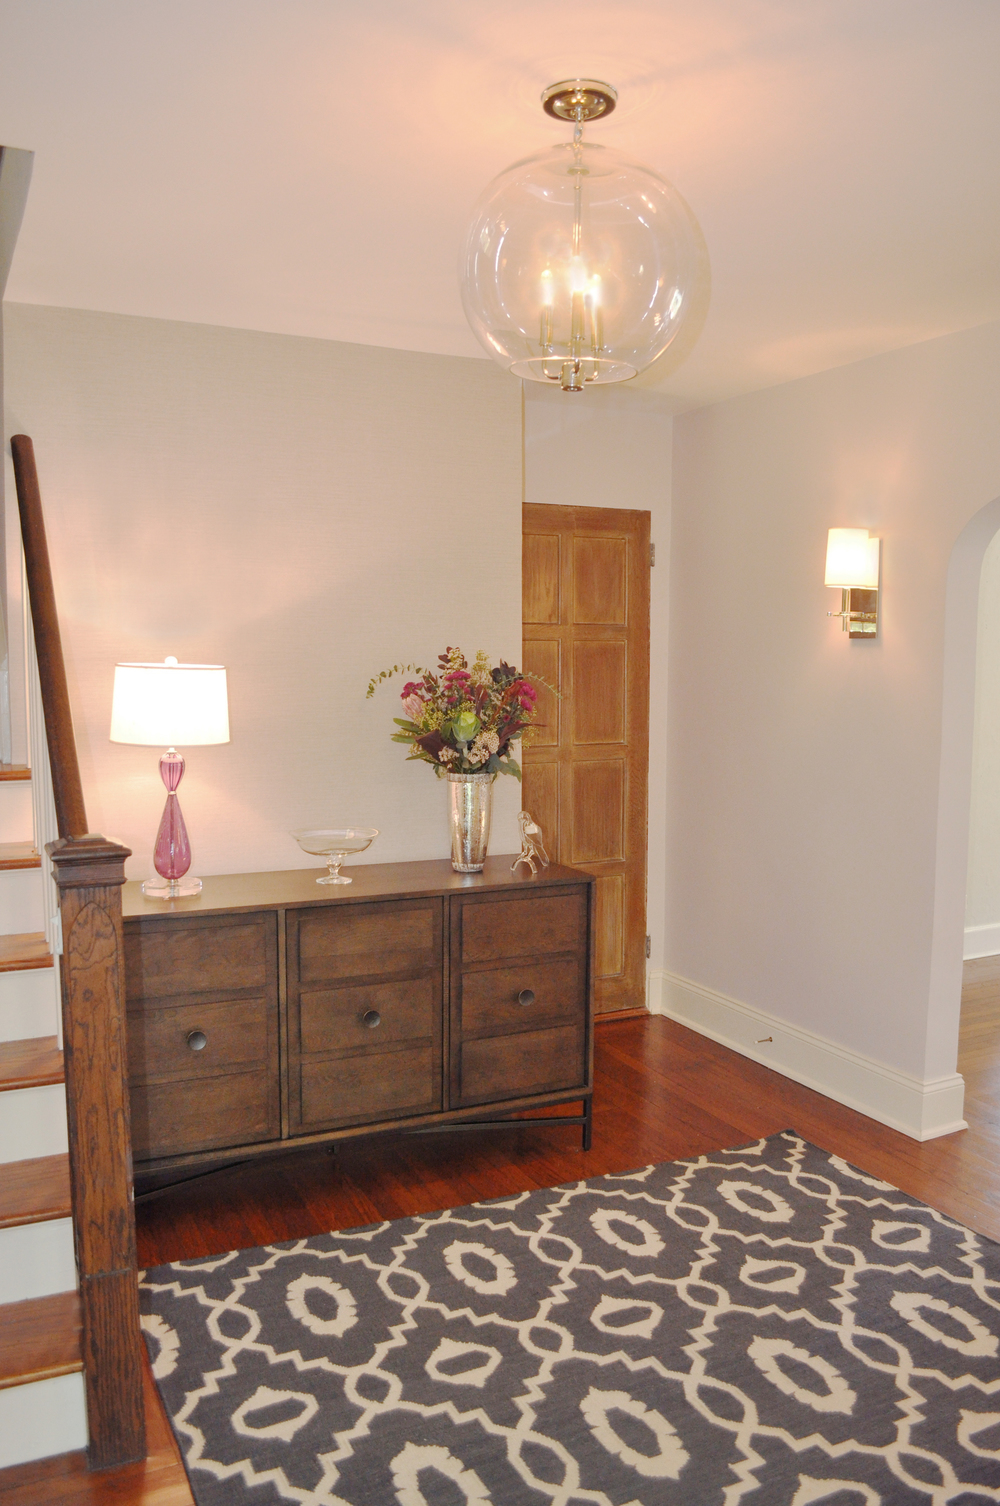 Home Interior Decorating_Entry_Foyer_Lighting_KAM DESIGN.jpg